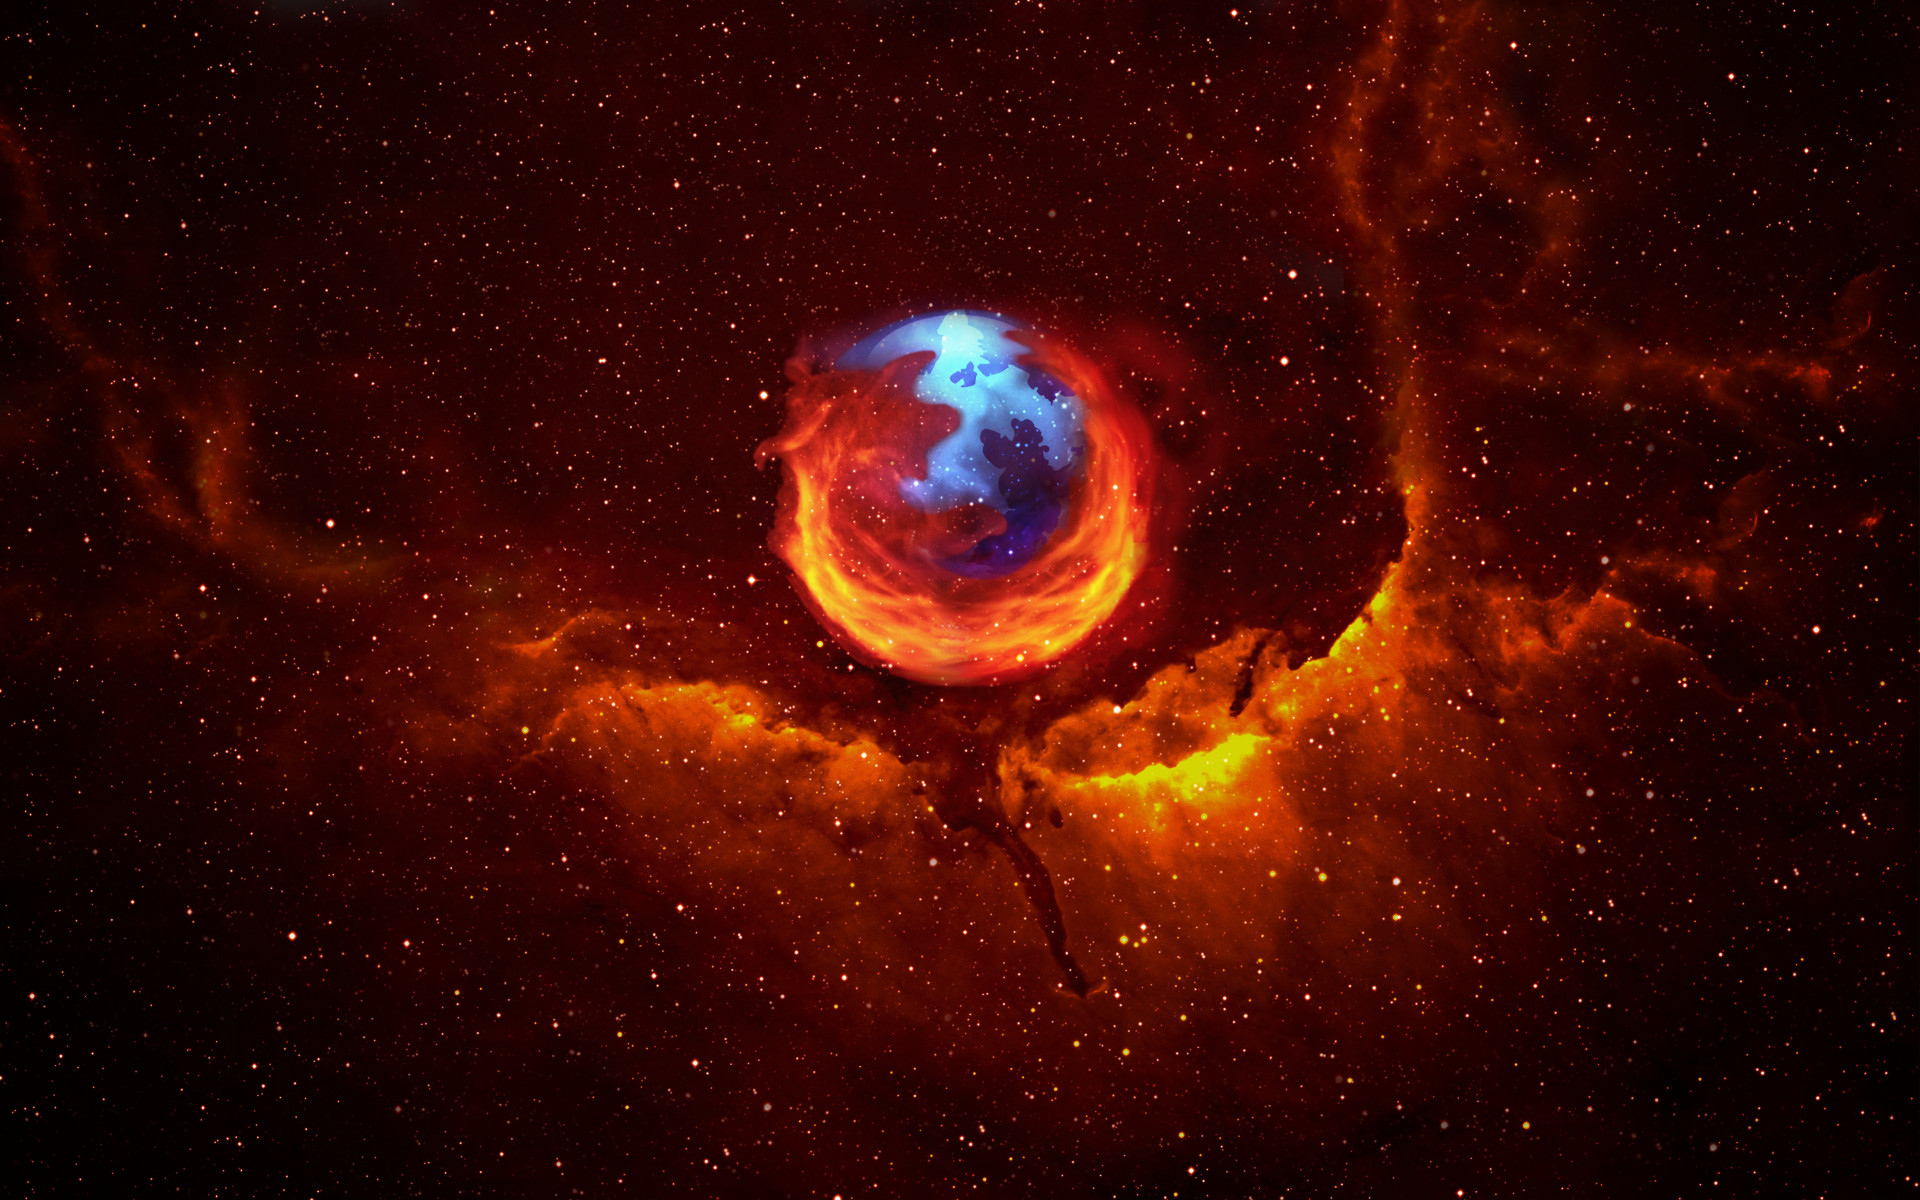 Cool-Mozilla-Firefox-Desktop-Wallpaper.jpg